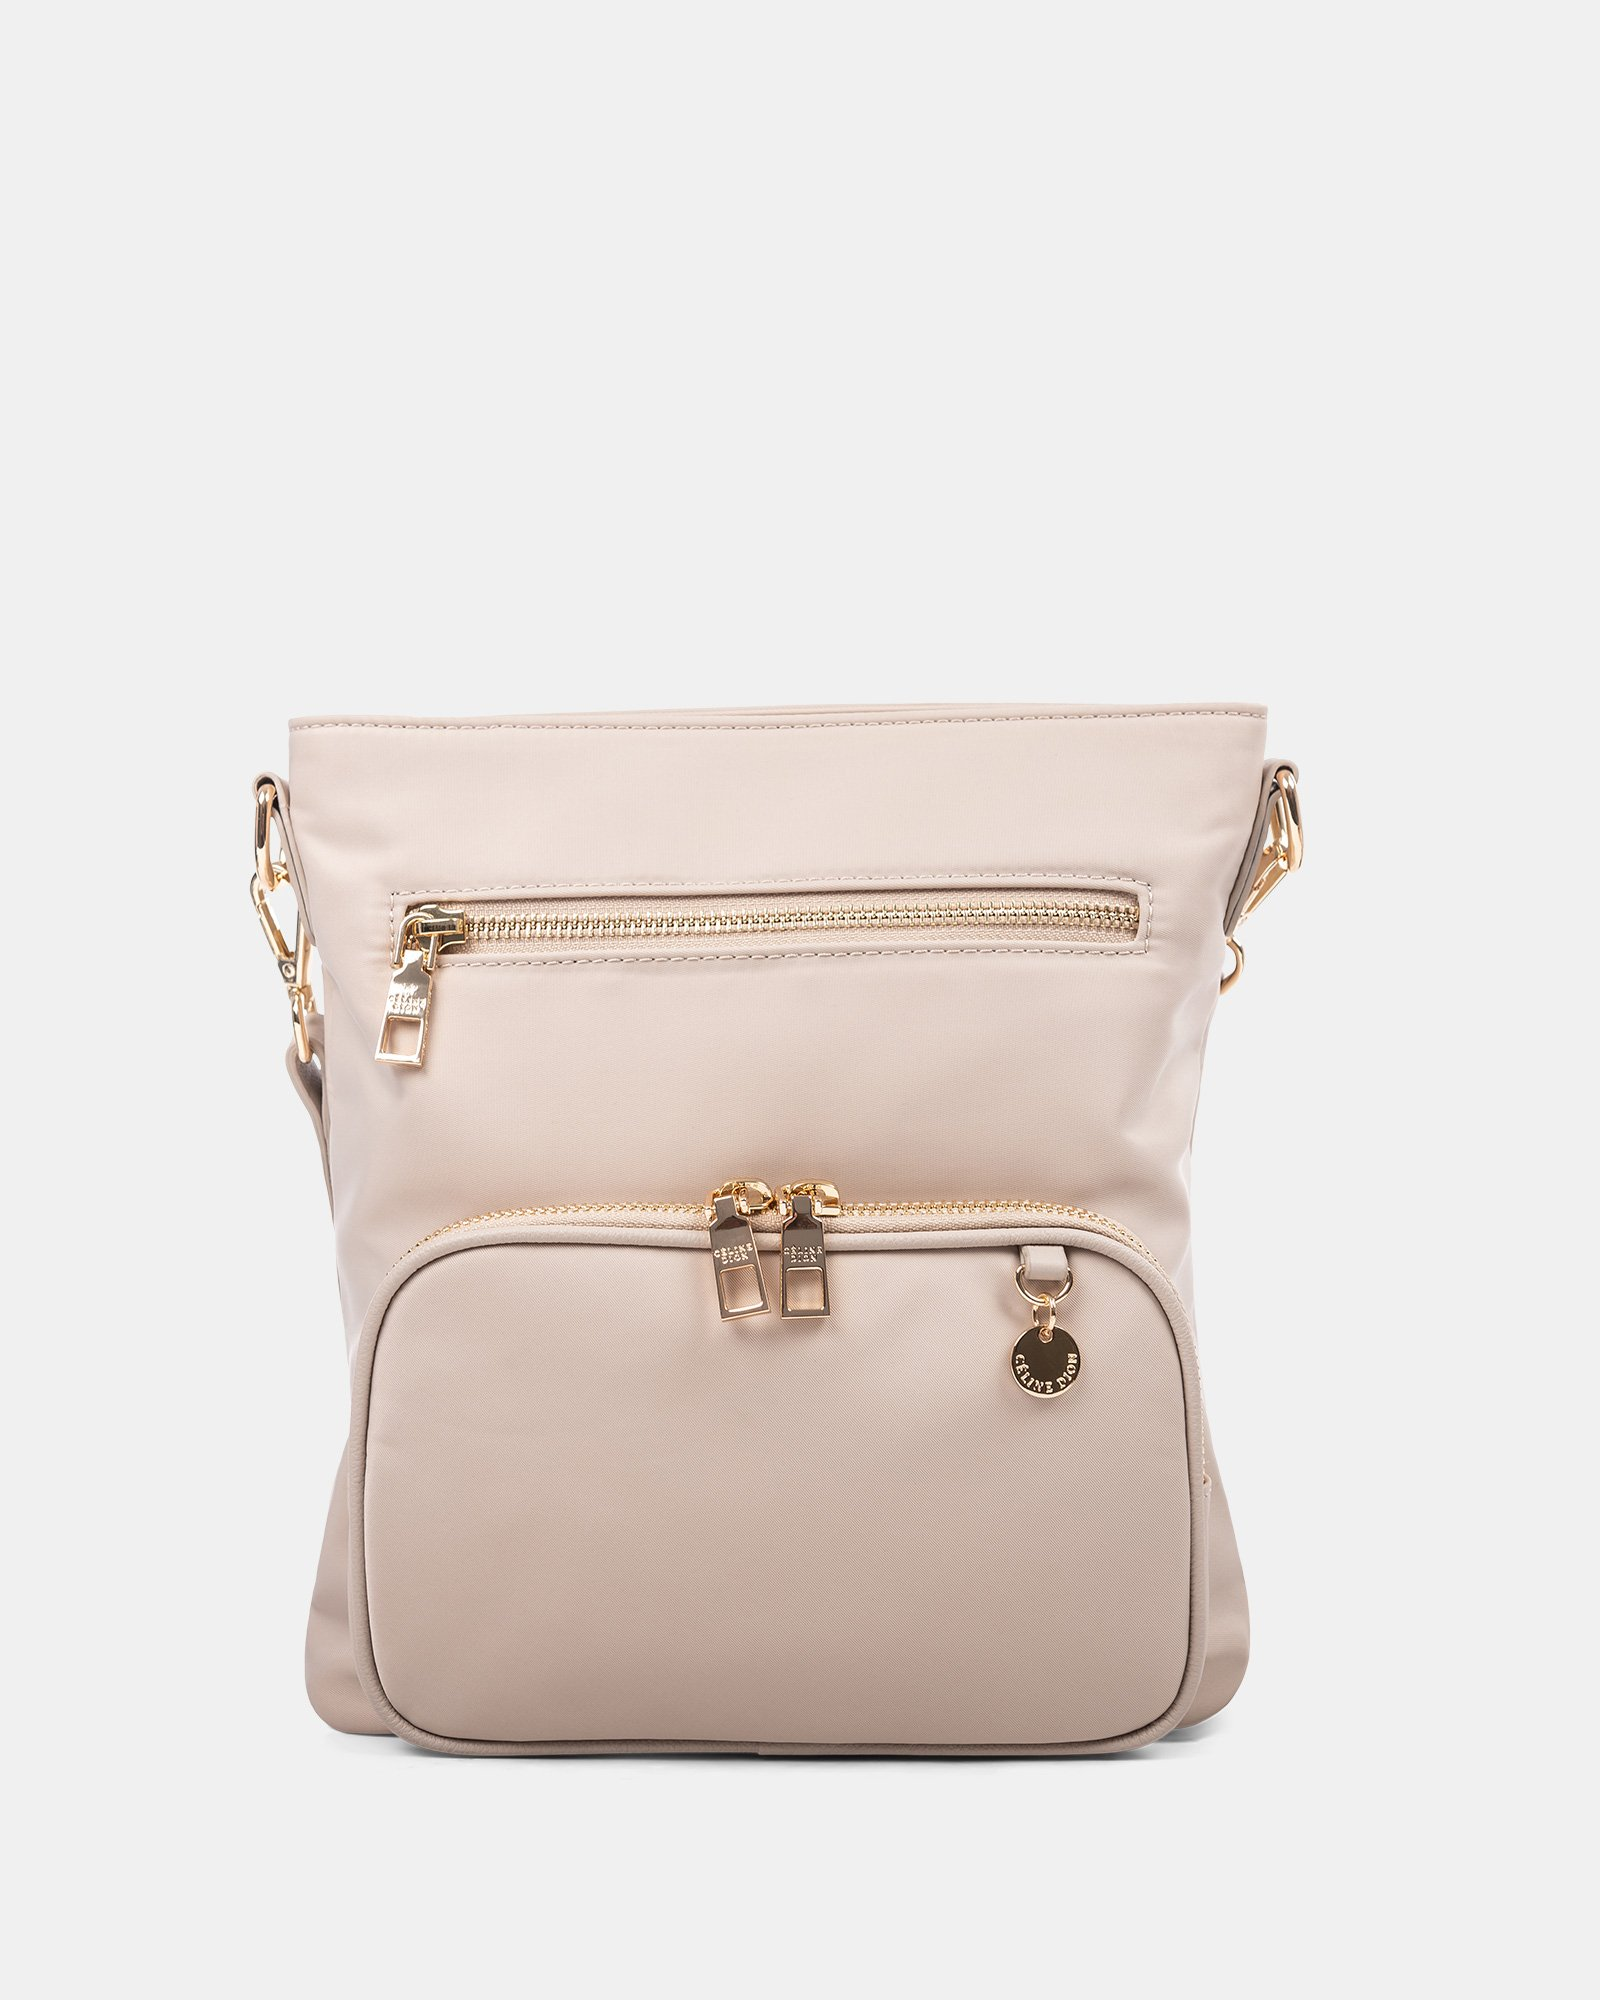 NYLON - CROSSBODY BAG WITH LEATHER TRIMS with RFID protection - taupe - Céline Dion - Zoom